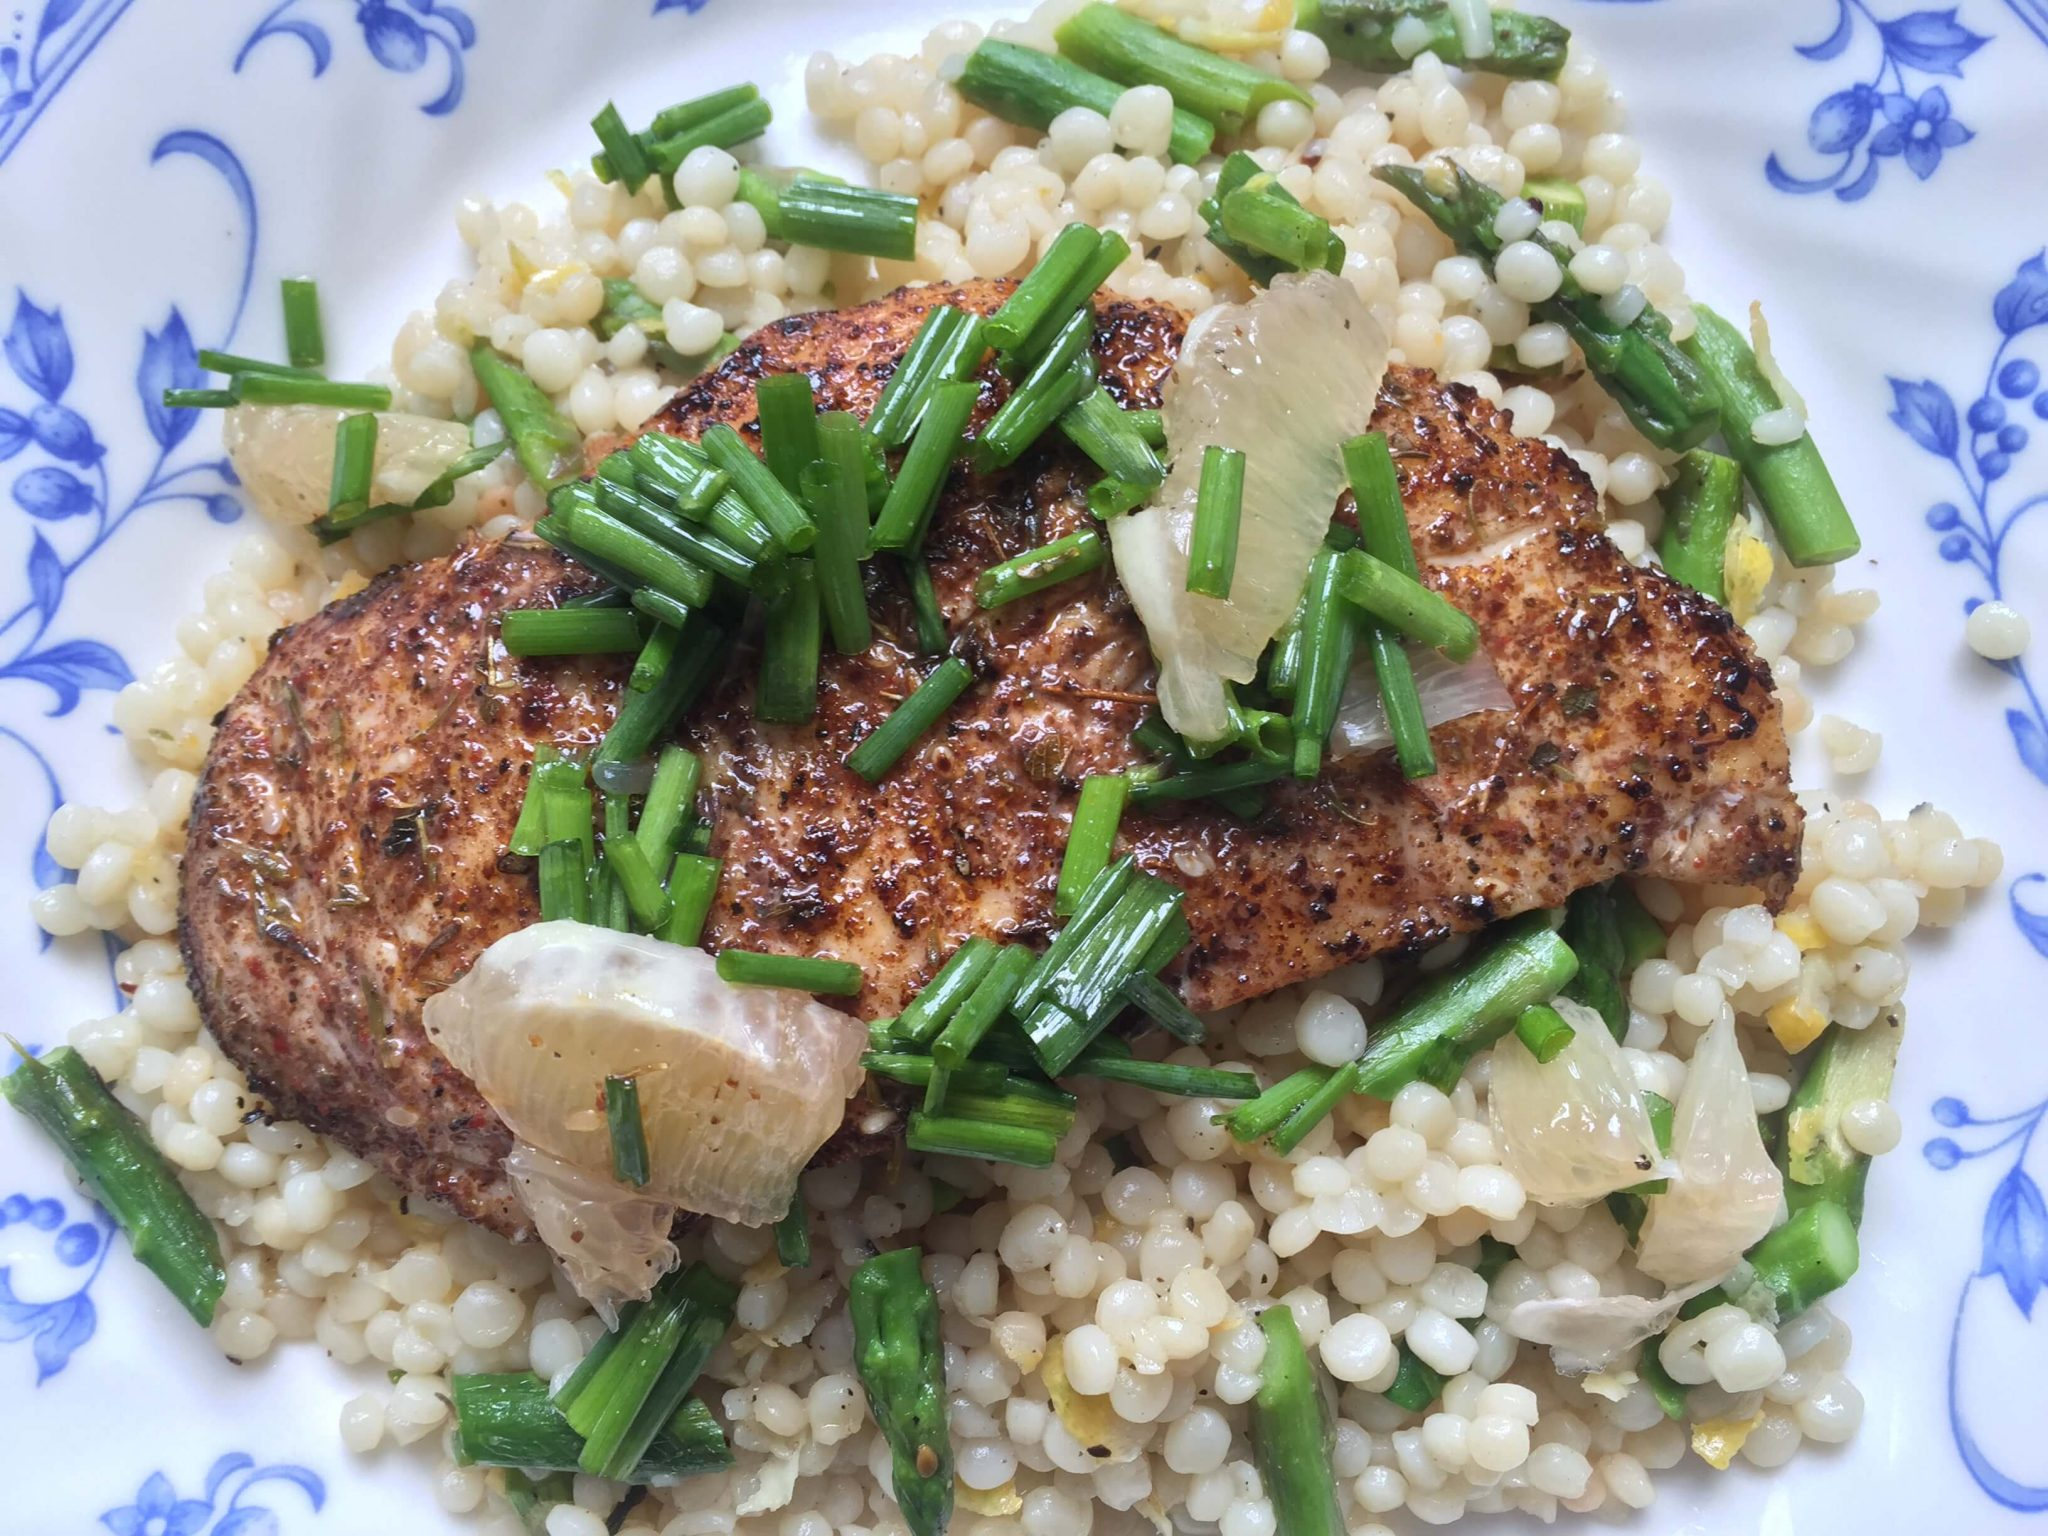 Blue apron family plan cost - Photo Gallery All Photos 9